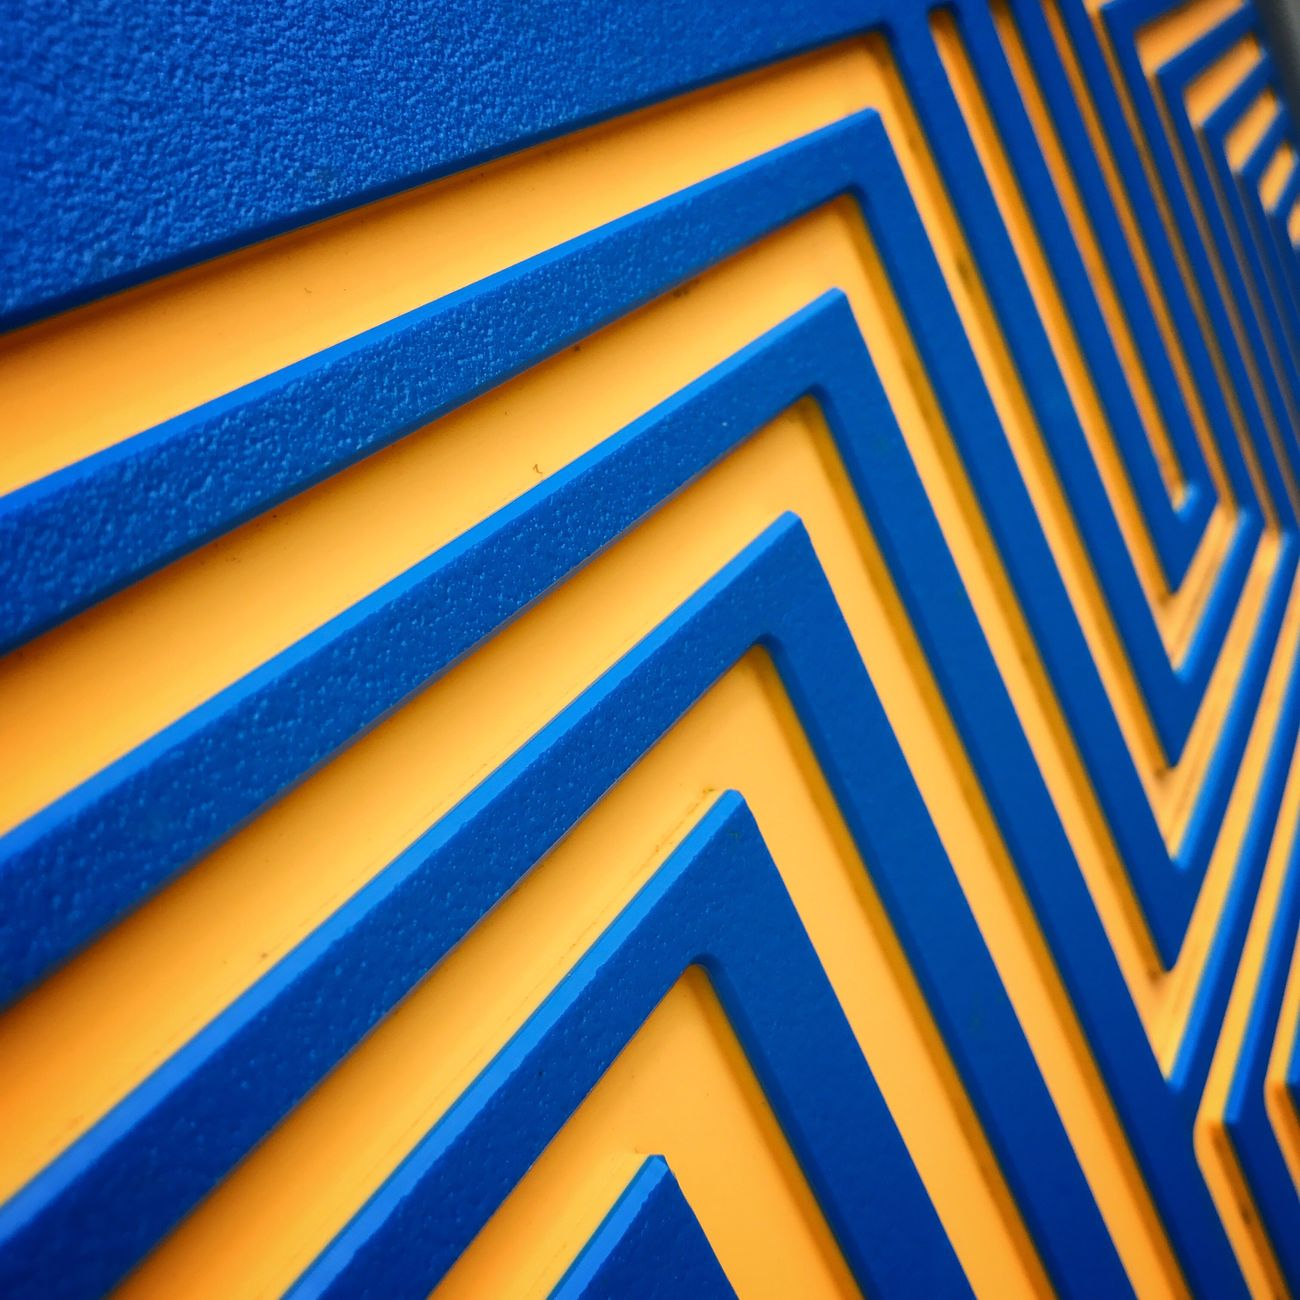 Blue and yellow lines Blue Backgrounds Full Frame No People Yellow Pattern Outdoors Close-up Architecture Day Lines Maths Math Mathematics Background